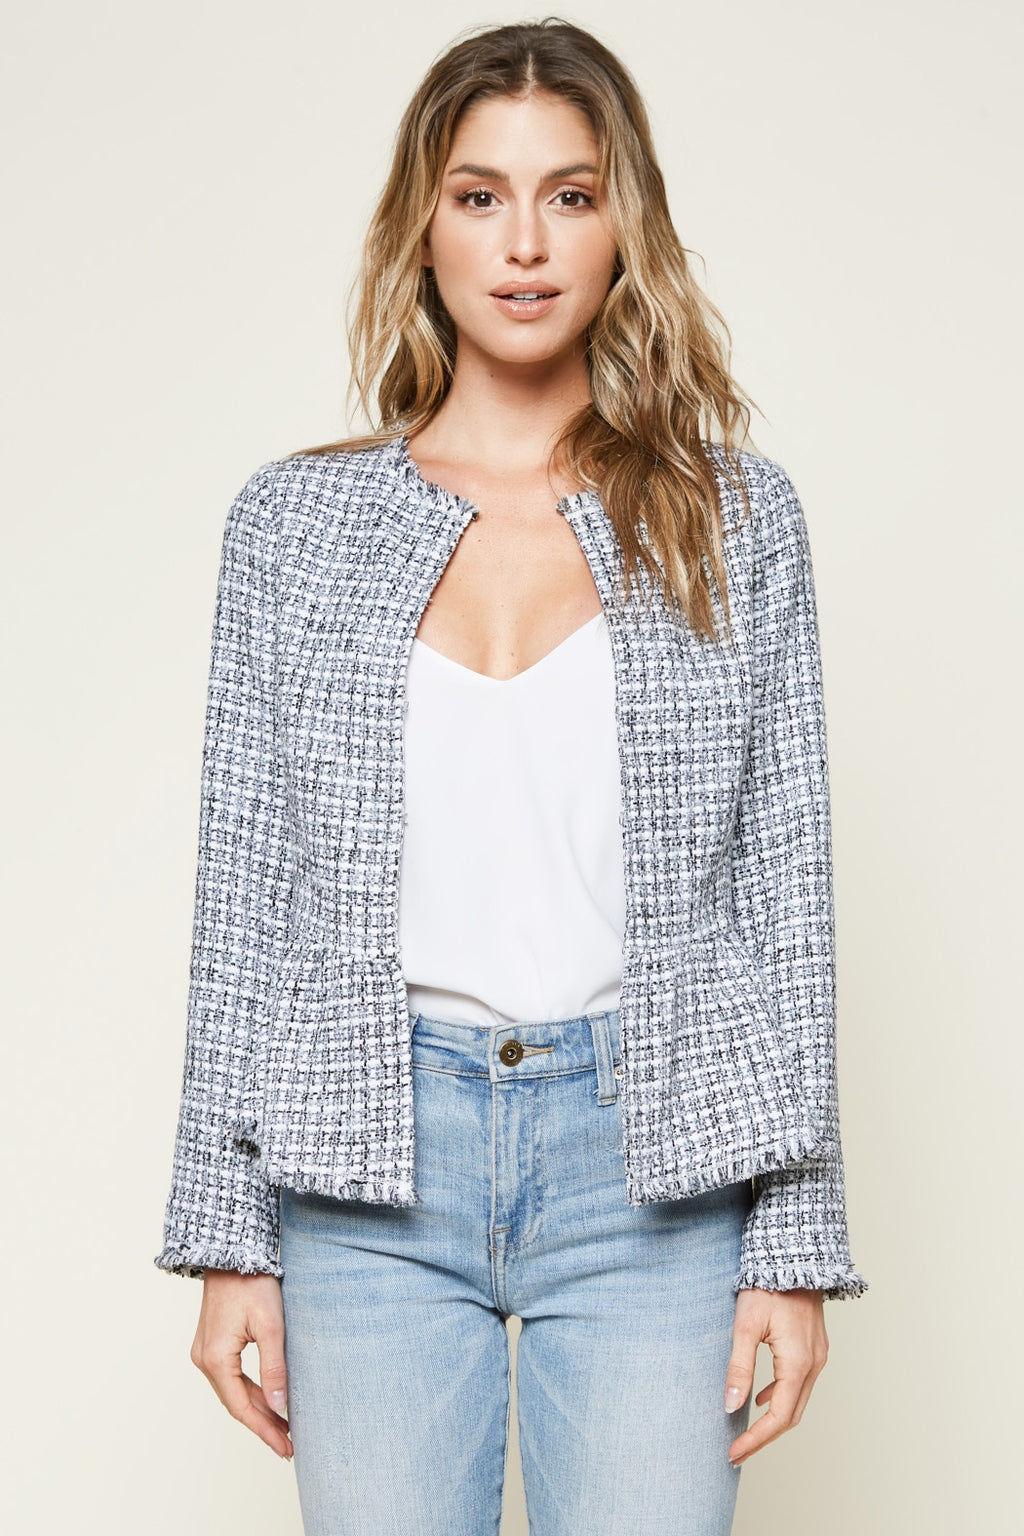 Juniper Tweed Peplum Jacket - NIVE GIRL